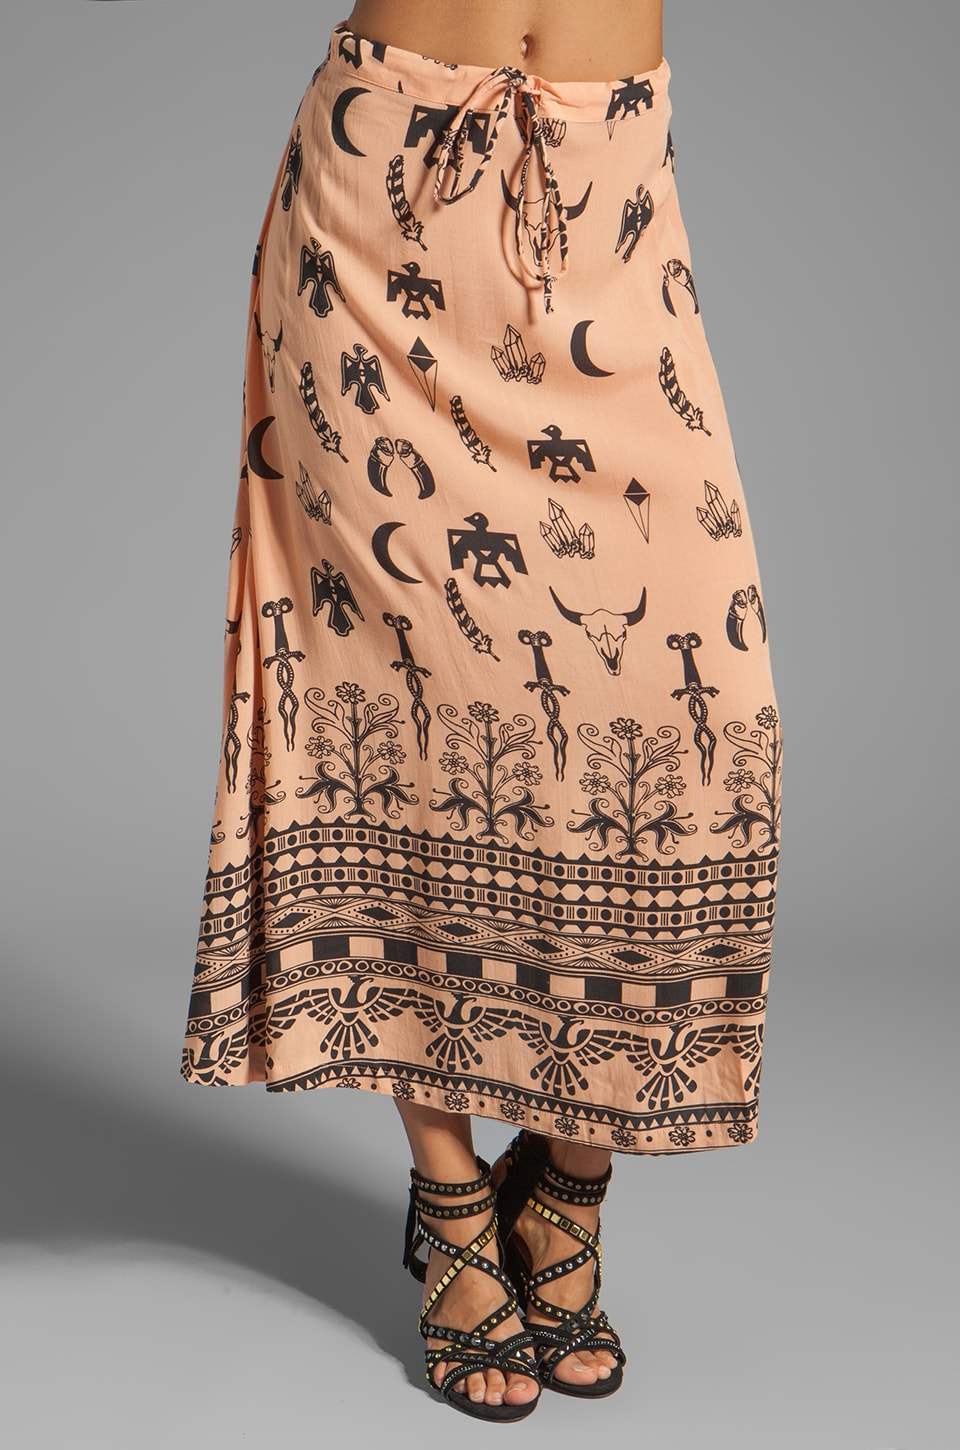 Spell & The Gypsy Collective Boho Tribal Maxi Skirt in Peach